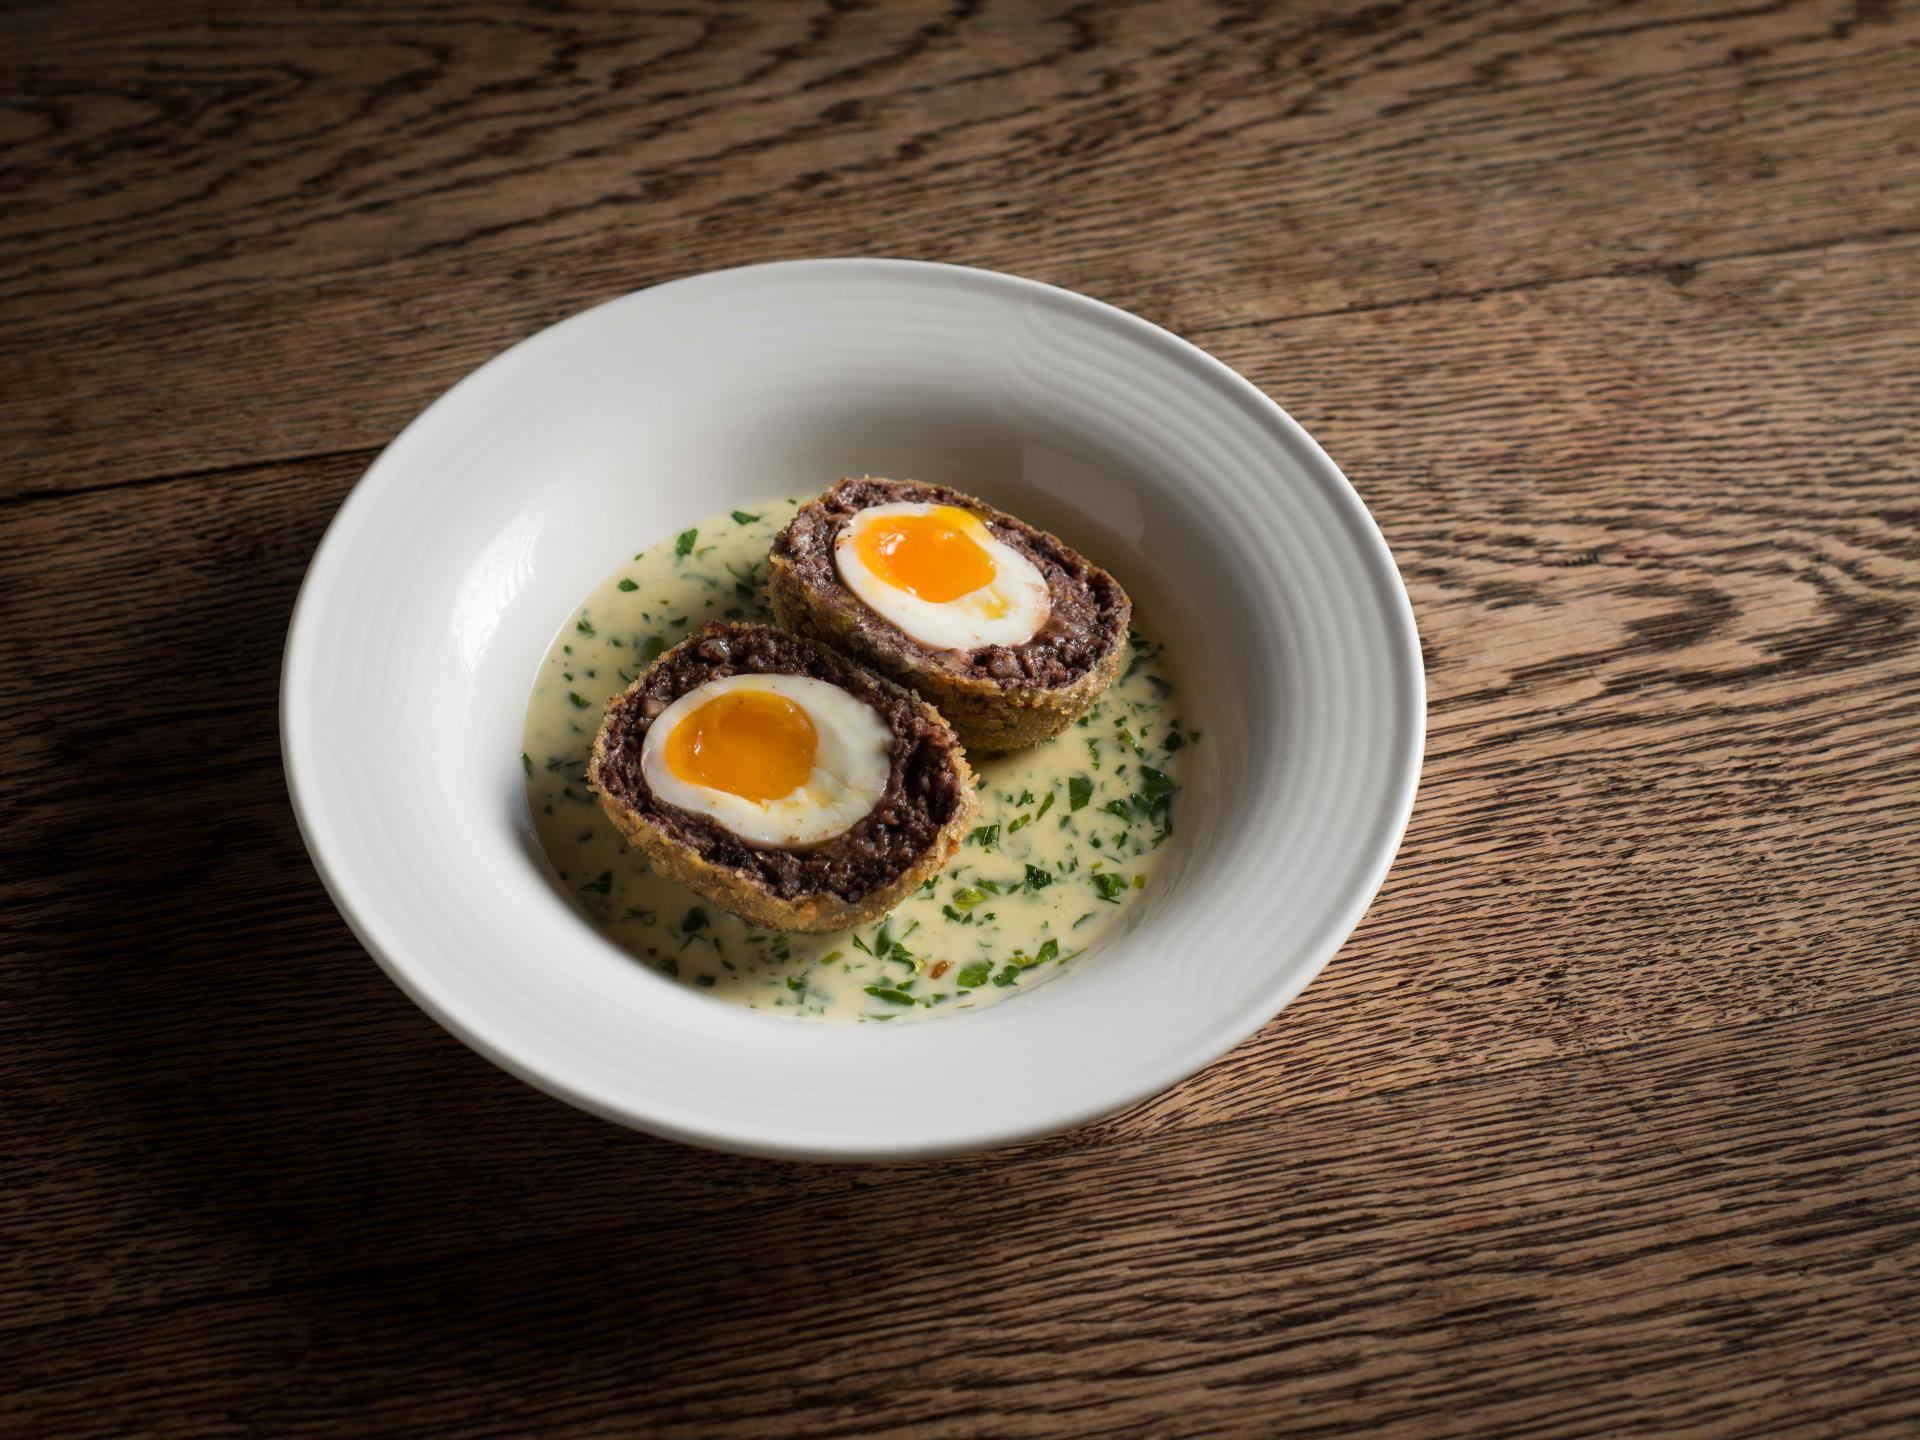 Mangalitza black pudding scotch egg